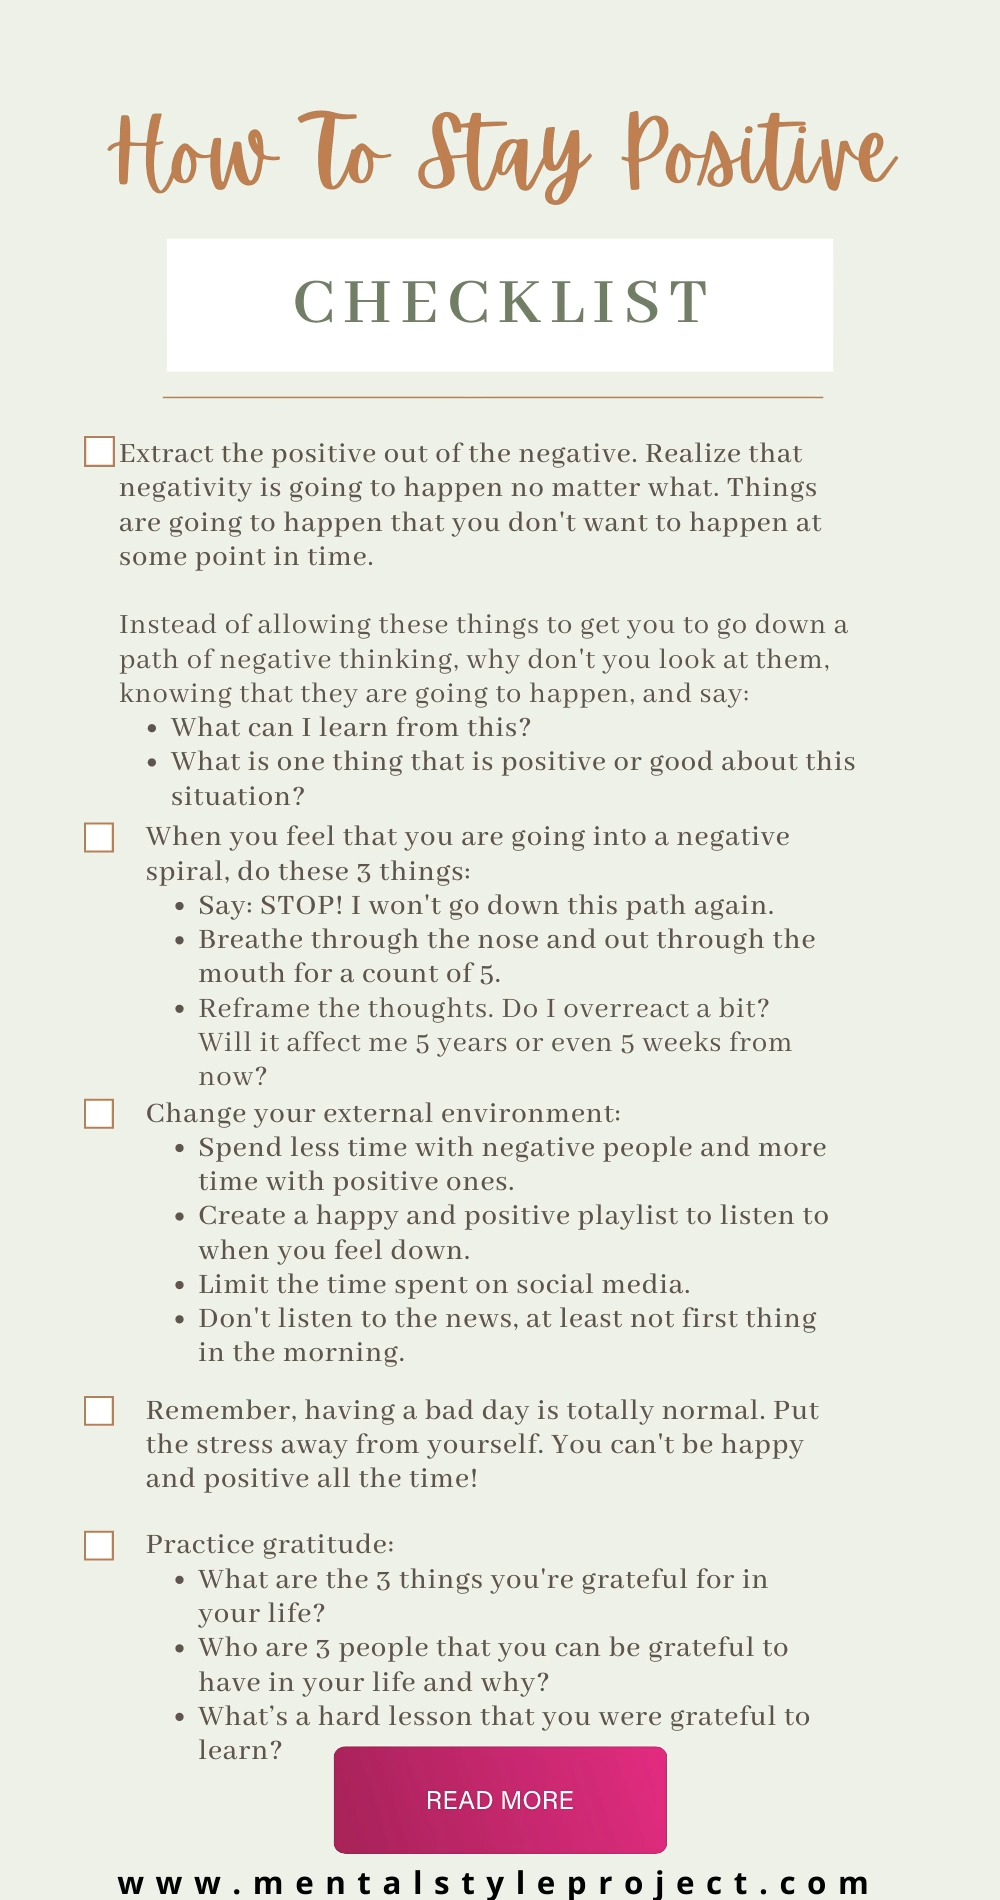 How To Stay Positive - FREE Checklist PDF